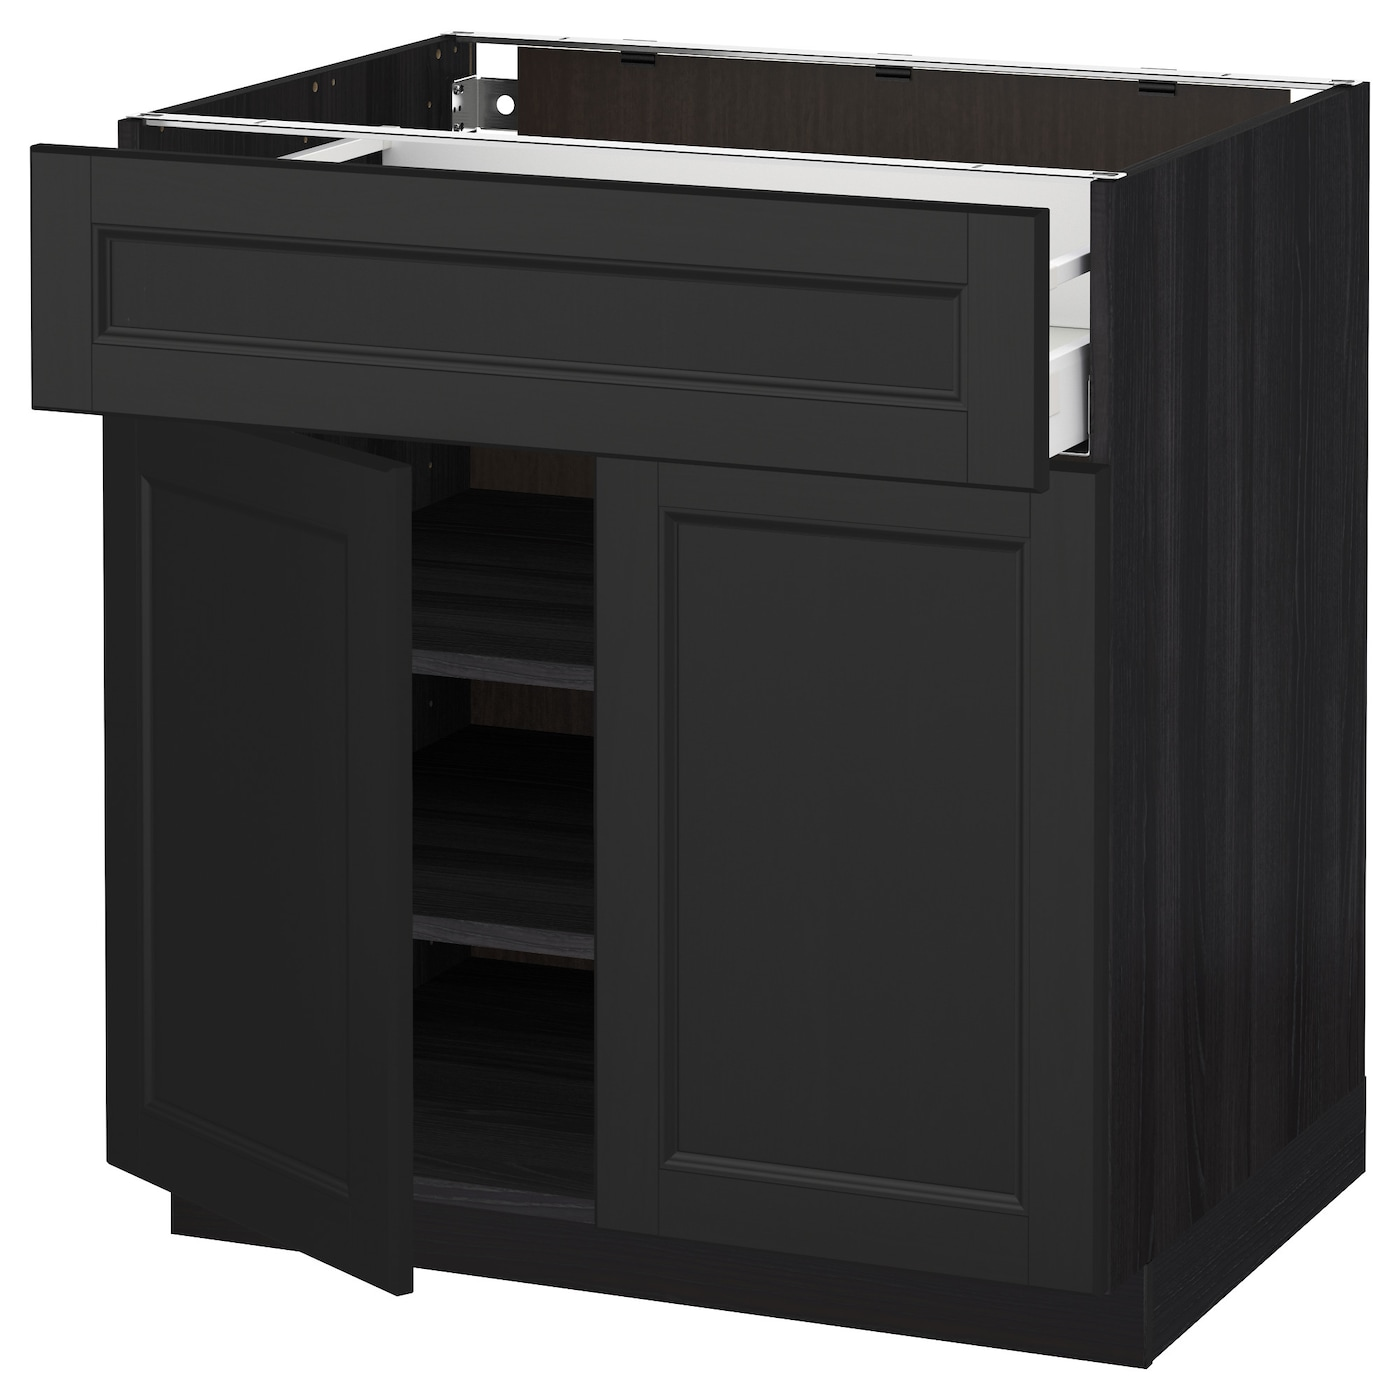 metod maximera base cabinet with drawer 2 doors black laxarby black brown 80x60 cm ikea. Black Bedroom Furniture Sets. Home Design Ideas